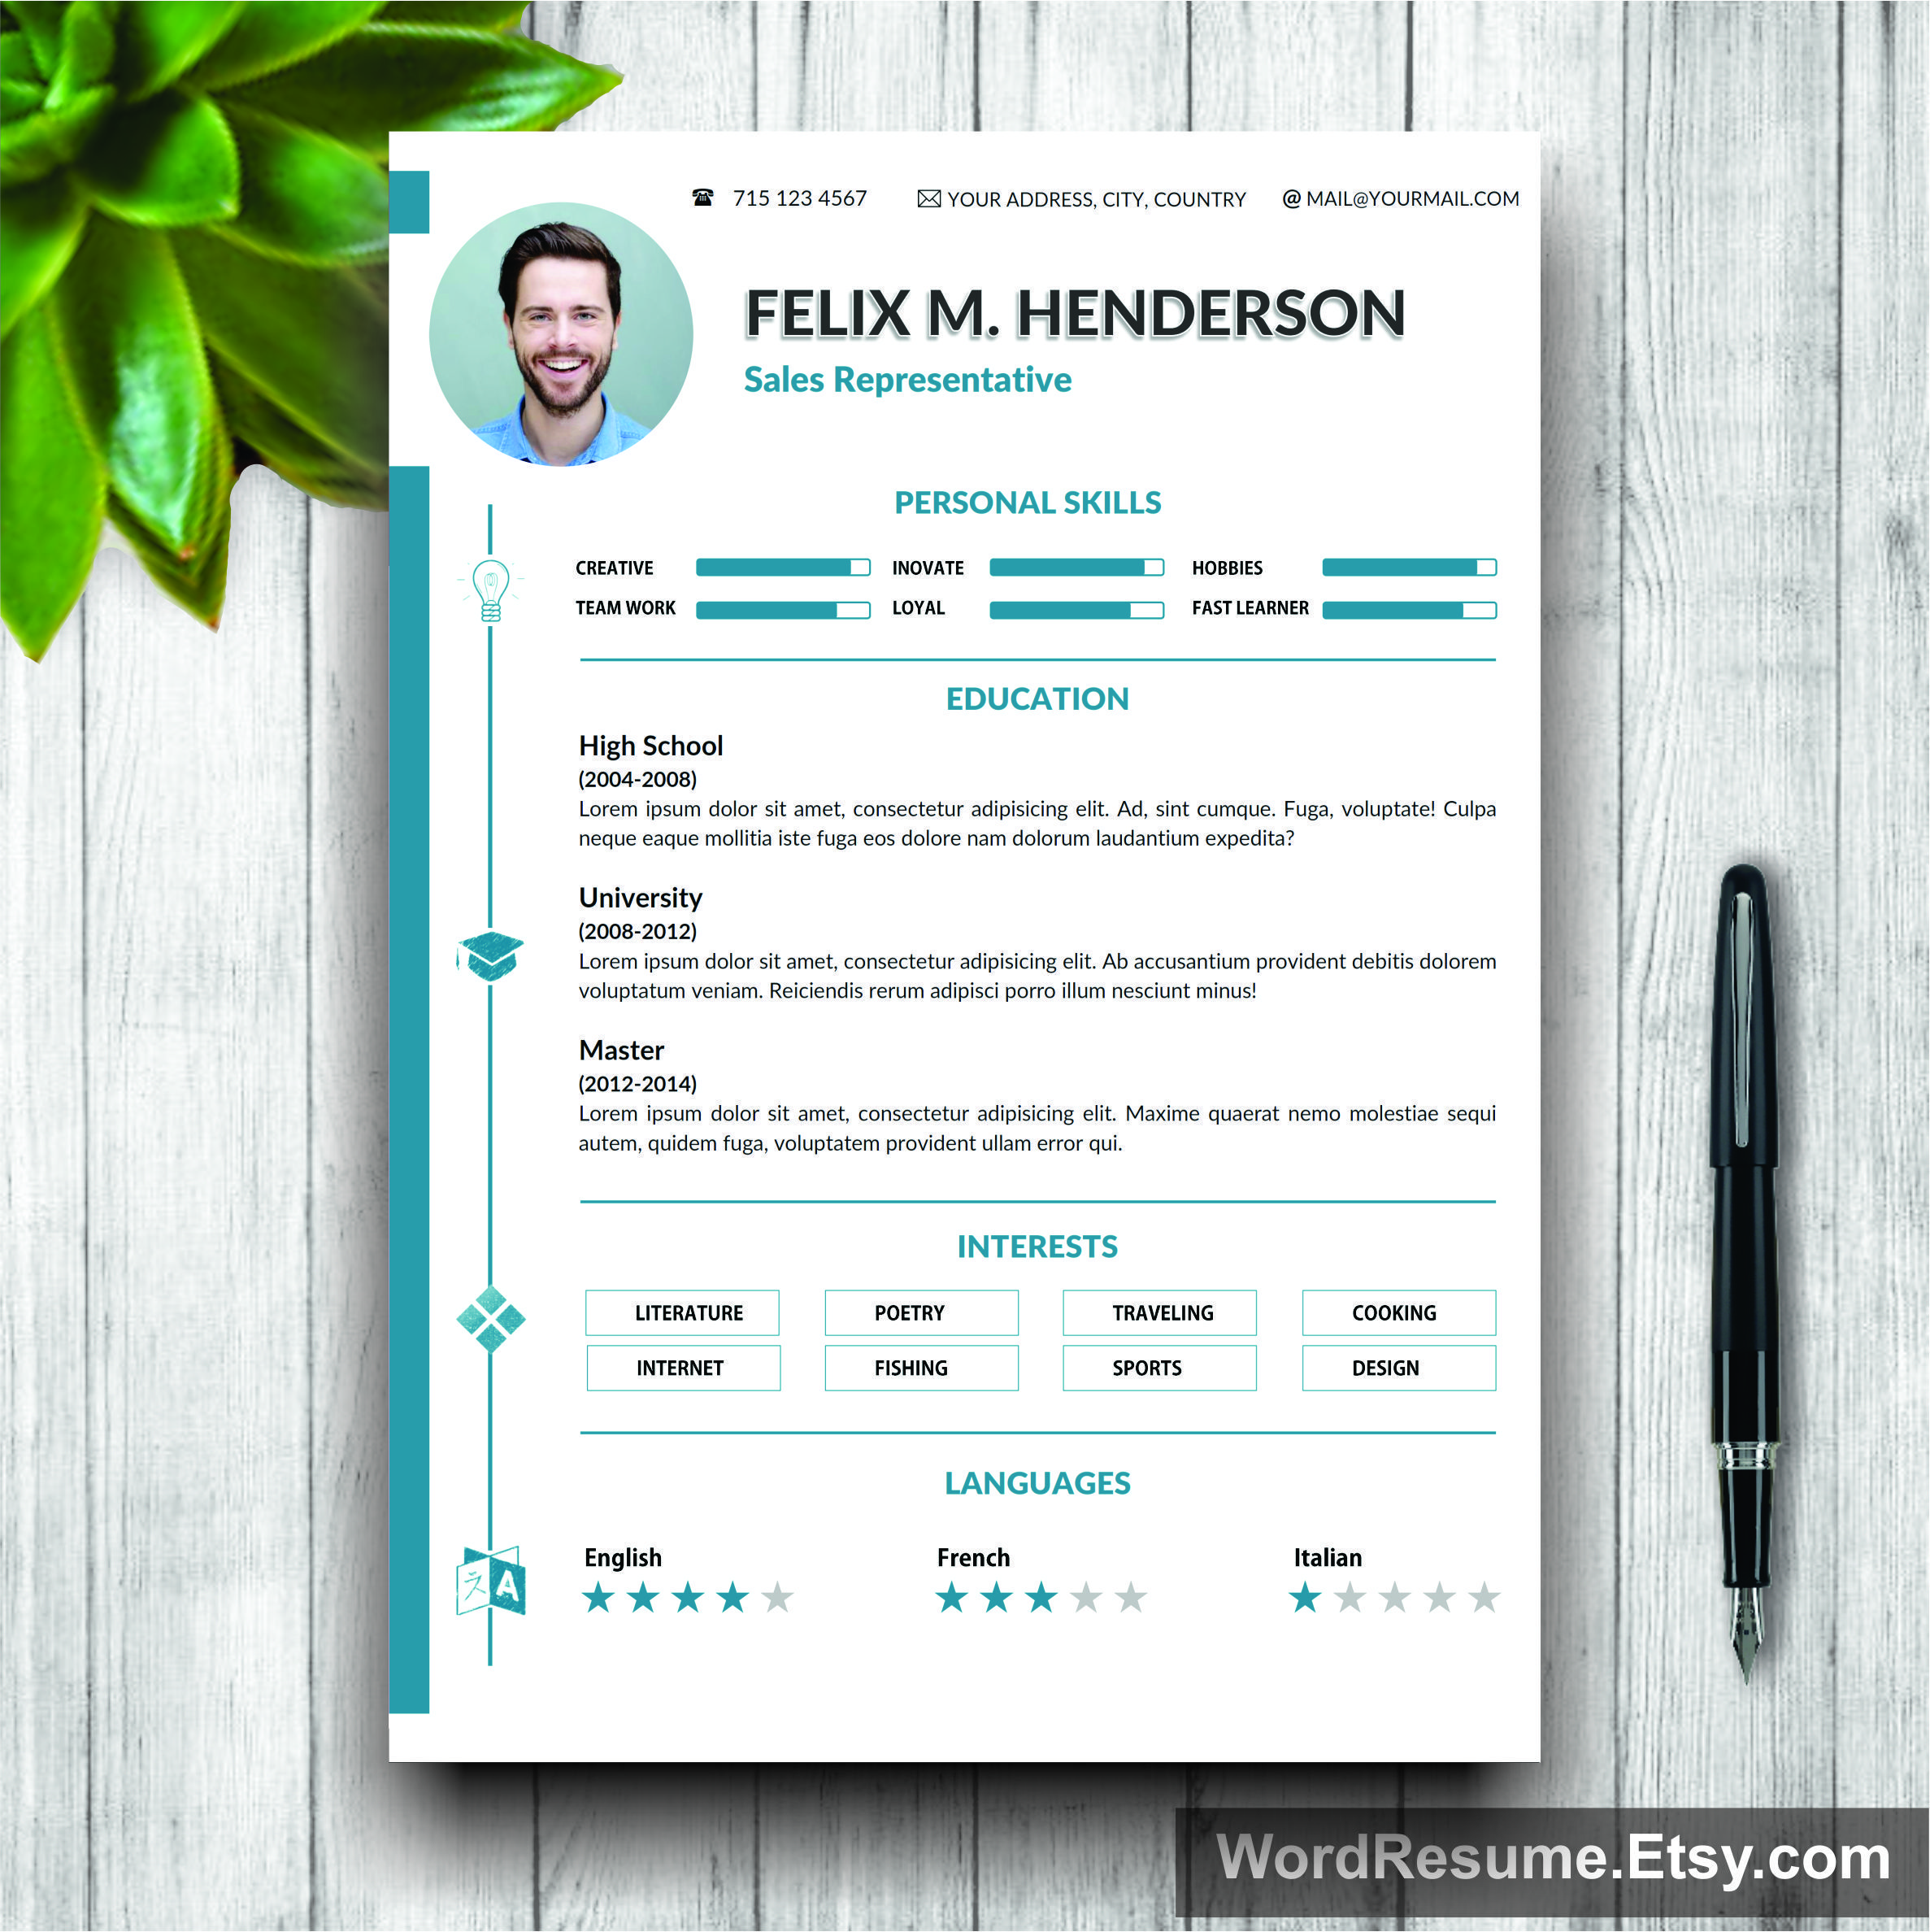 Resume template 2nd page resume resume templates pinterest resume template 2nd page resume yelopaper Choice Image